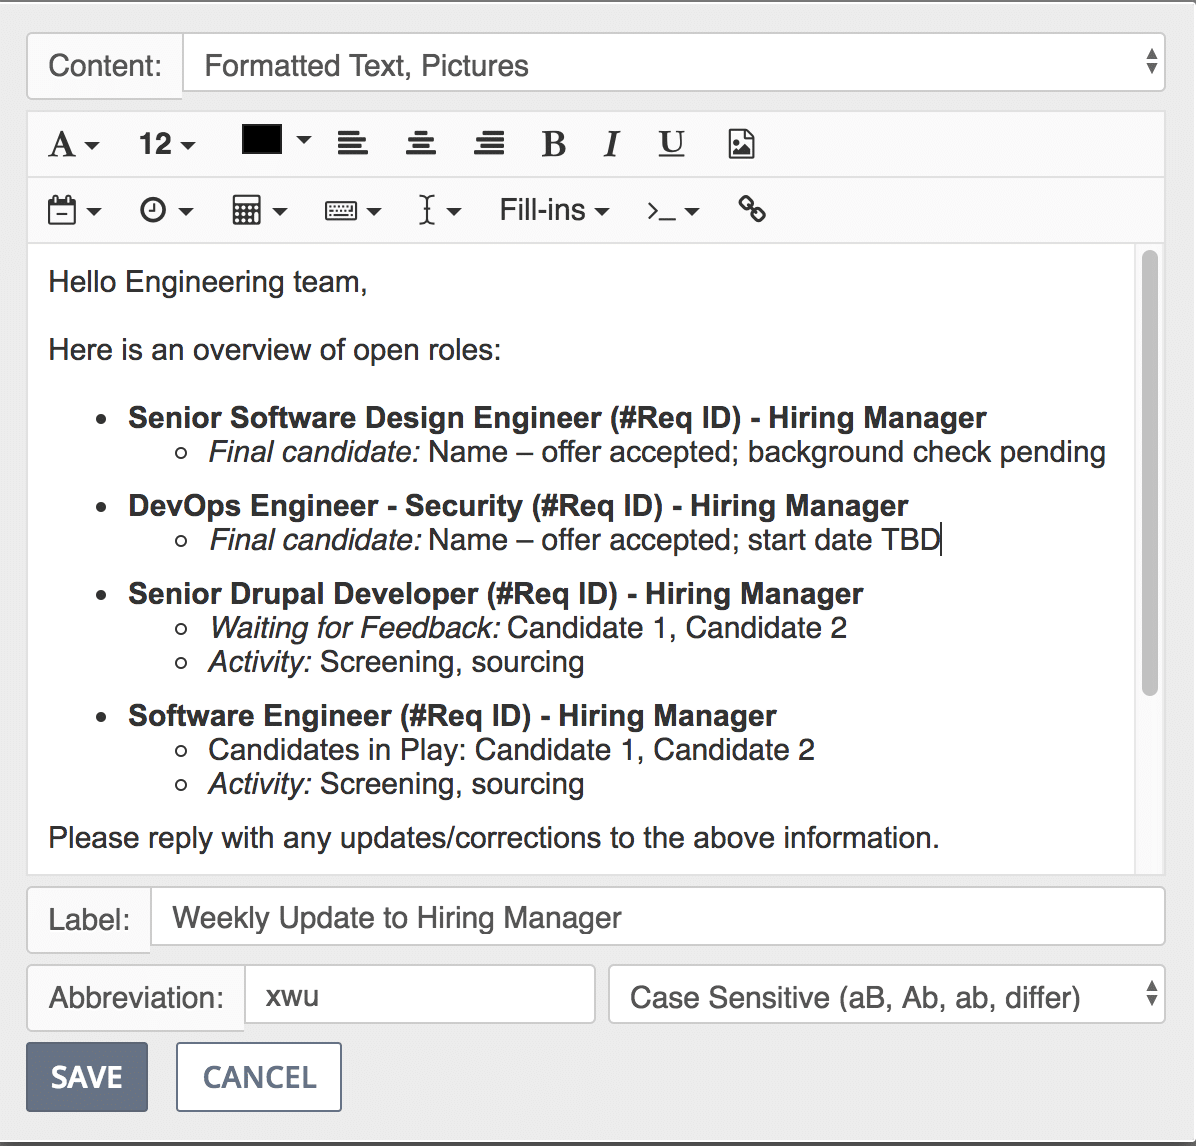 Preview of snippet for weekly update to hiring managers